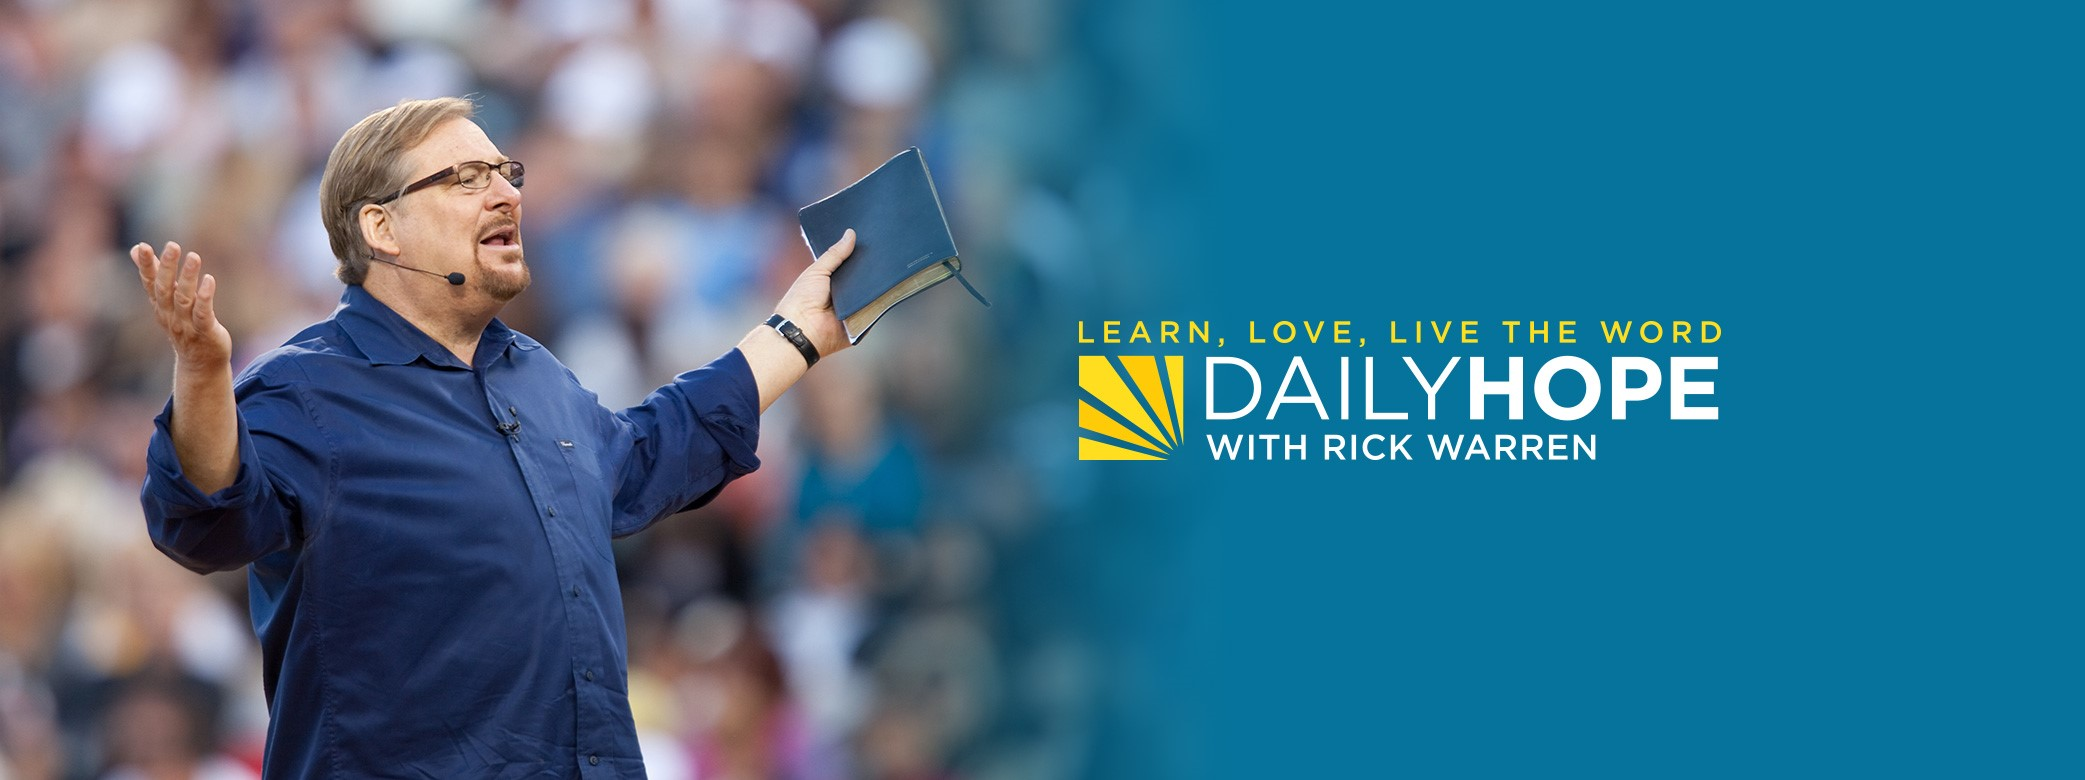 Daily Hope with Rick Warren 29th October 2020